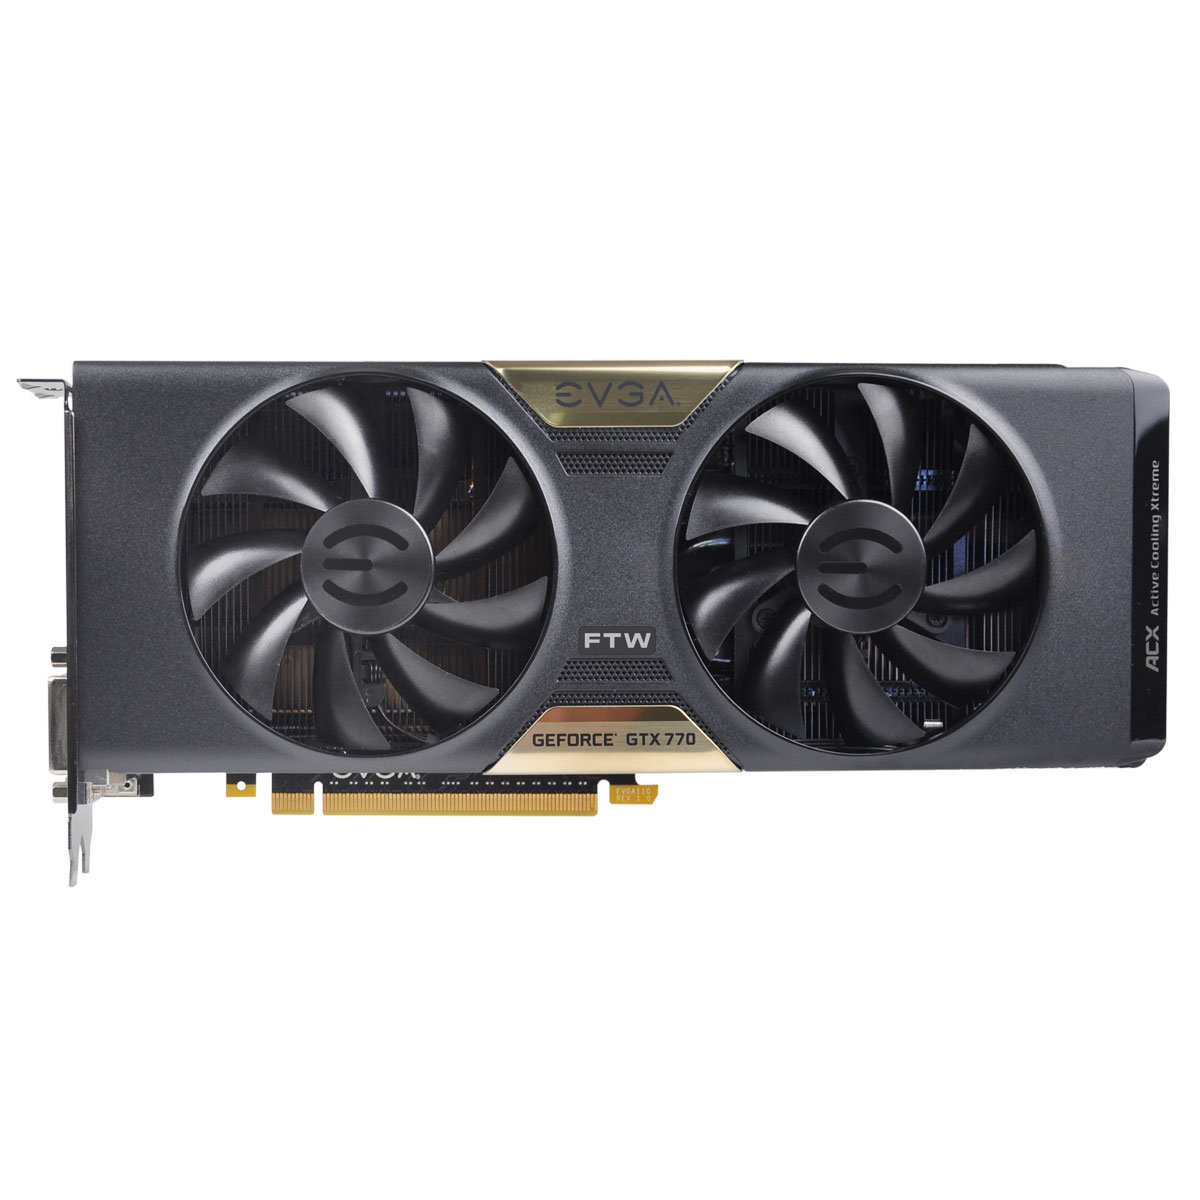 Placa de Video GeForce GTX770 4GB DDR5 256Bits FTW Dual ACX 04G-P4-3776-KR - EVGA